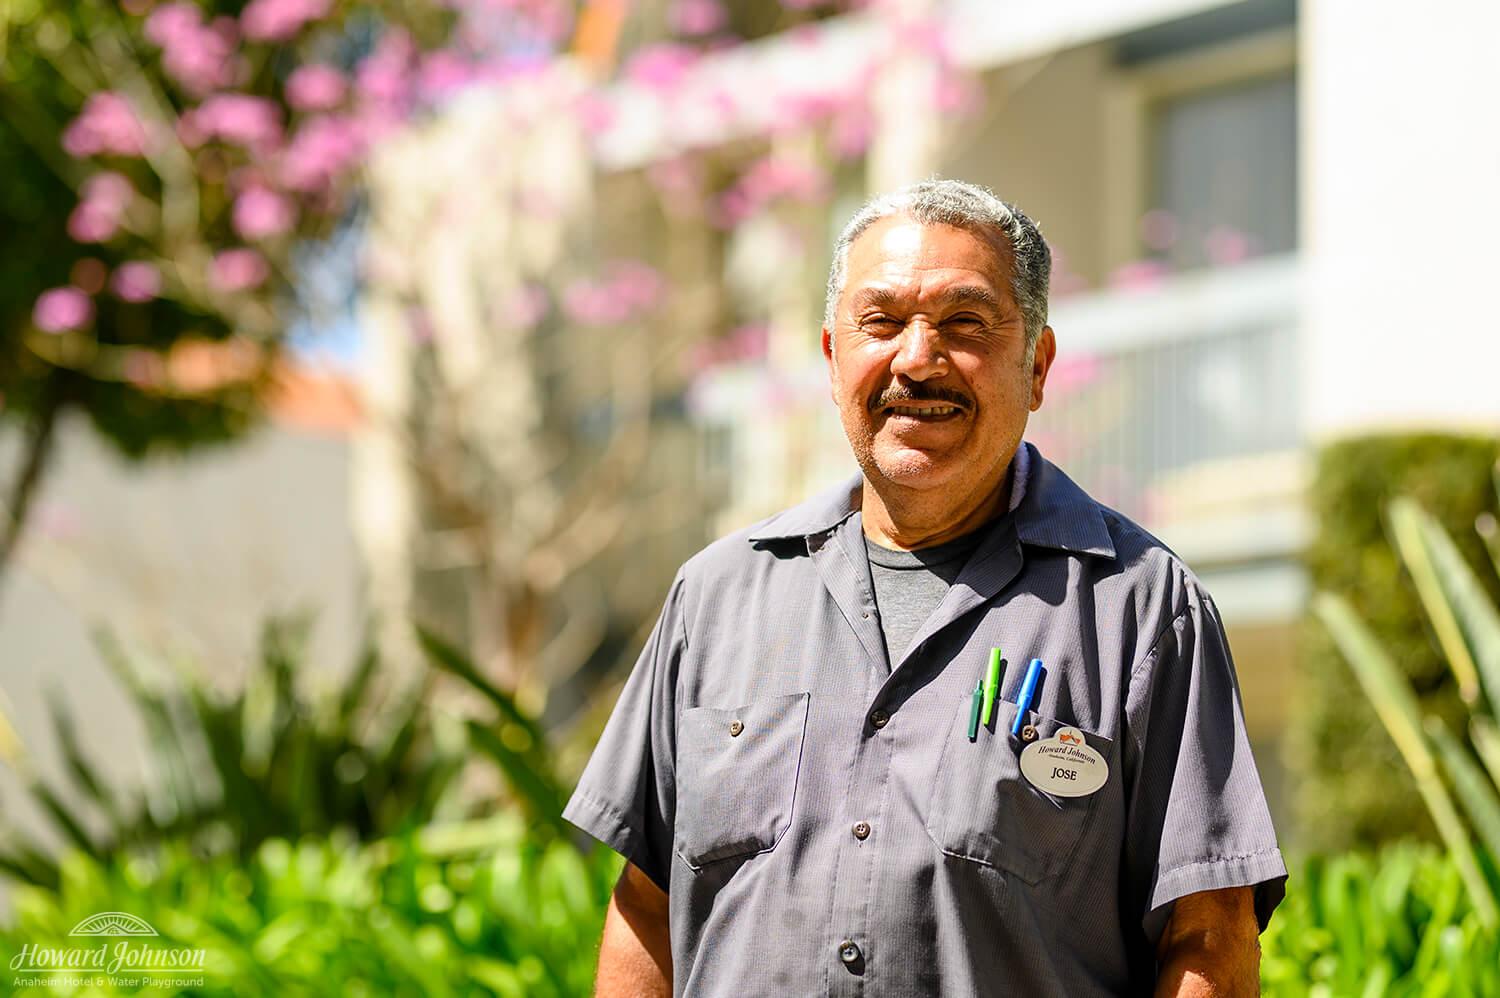 A Howard Johnson Anaheim employee named Jose poses outside the hotel